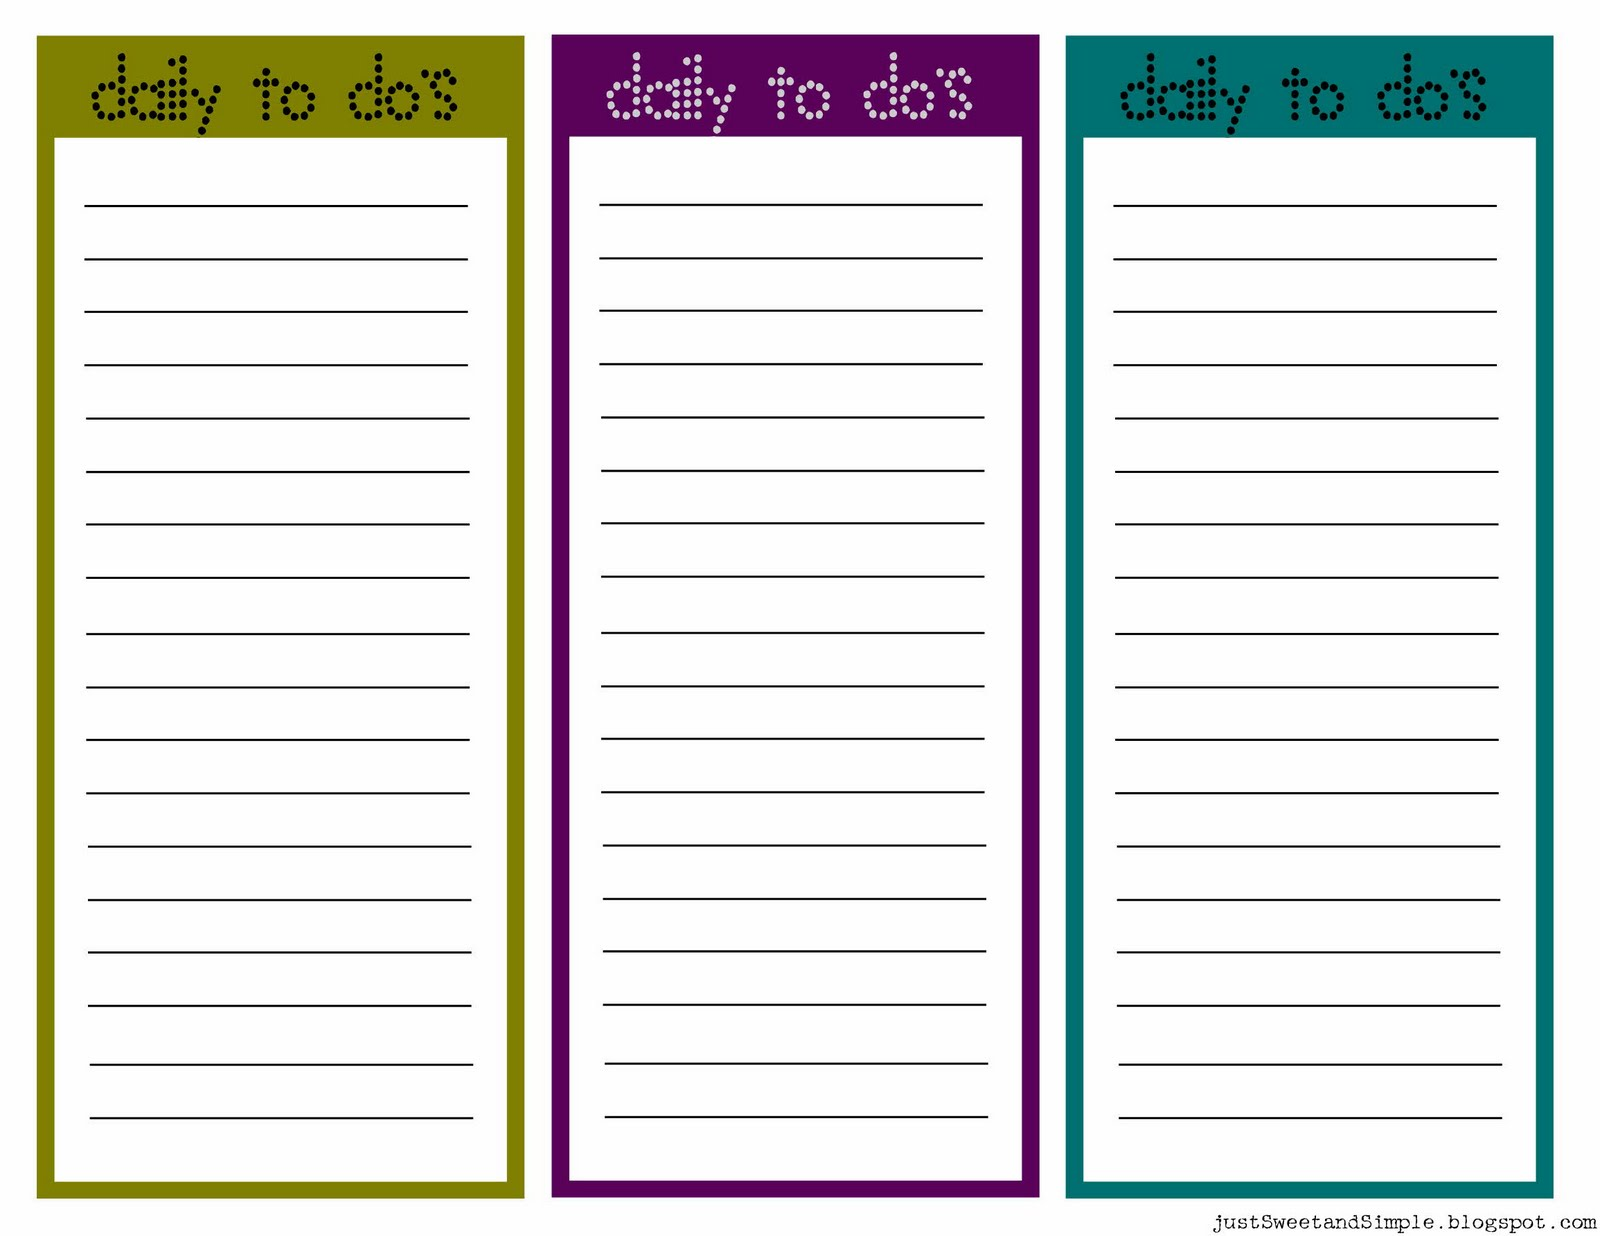 Just Sweet And Simple Printable Little Daily To Do List S